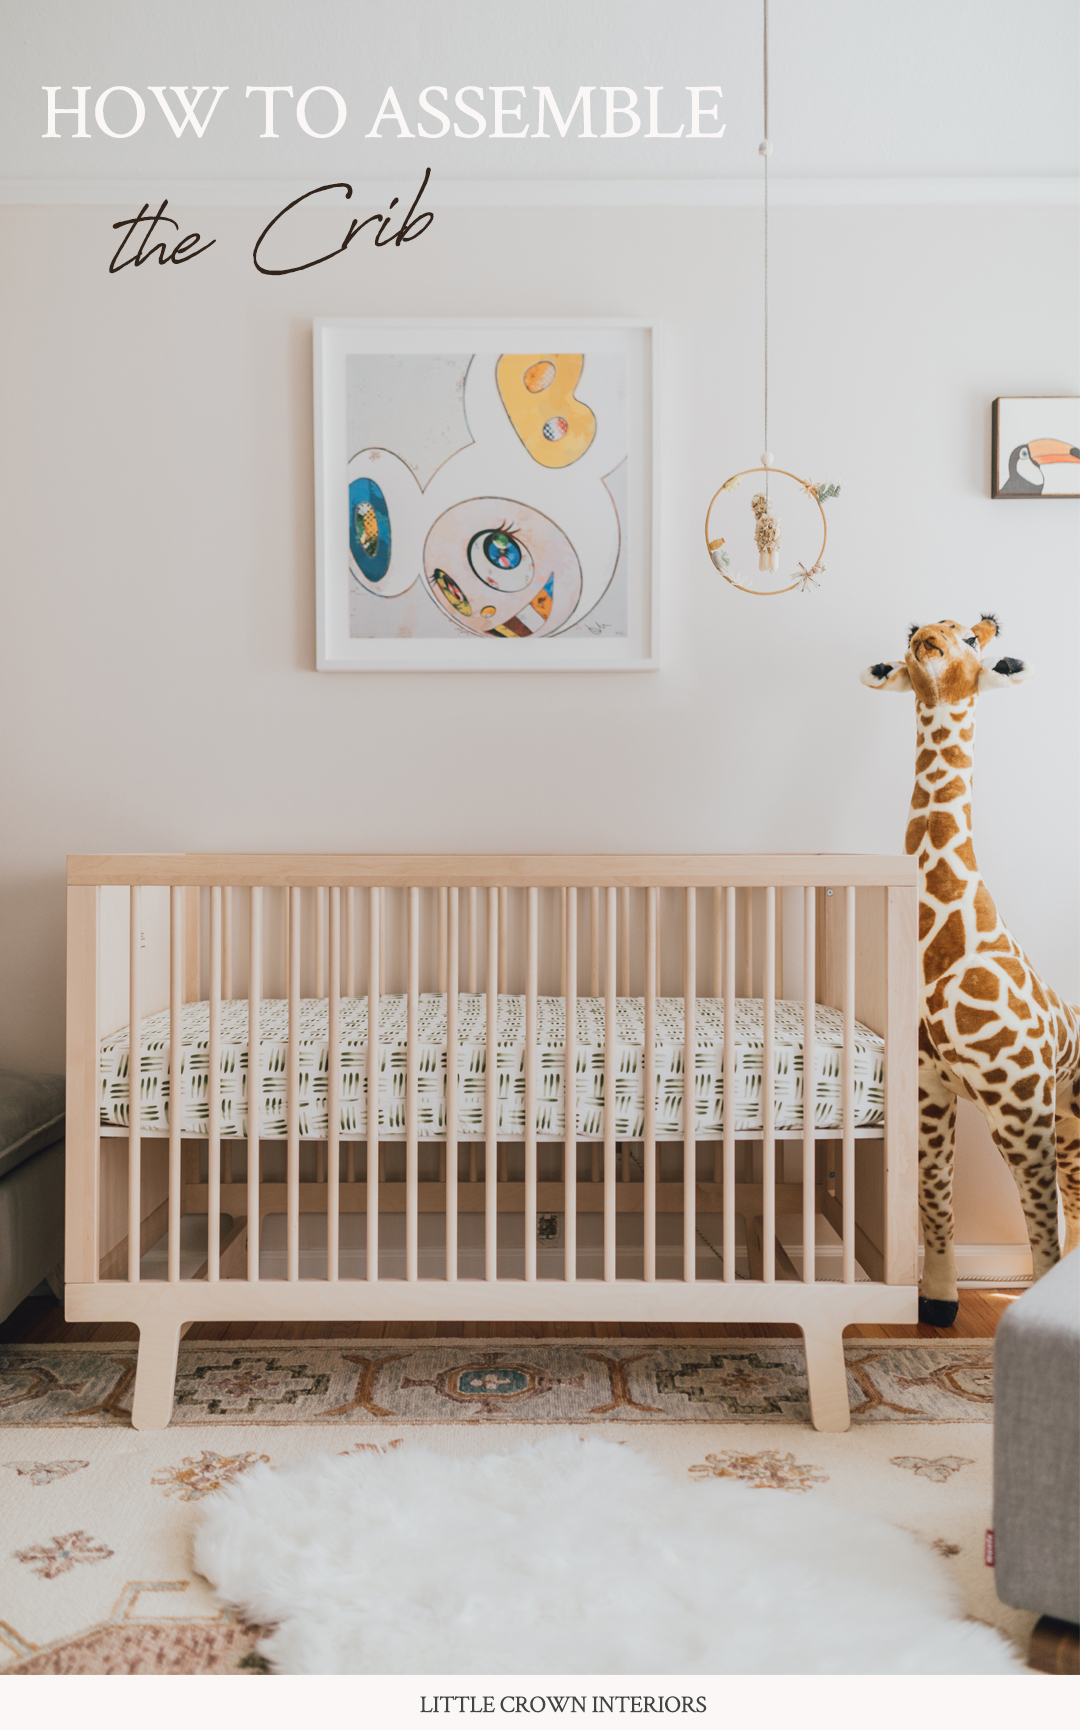 How to Assemble a Crib | Little Crown Interiors Blog